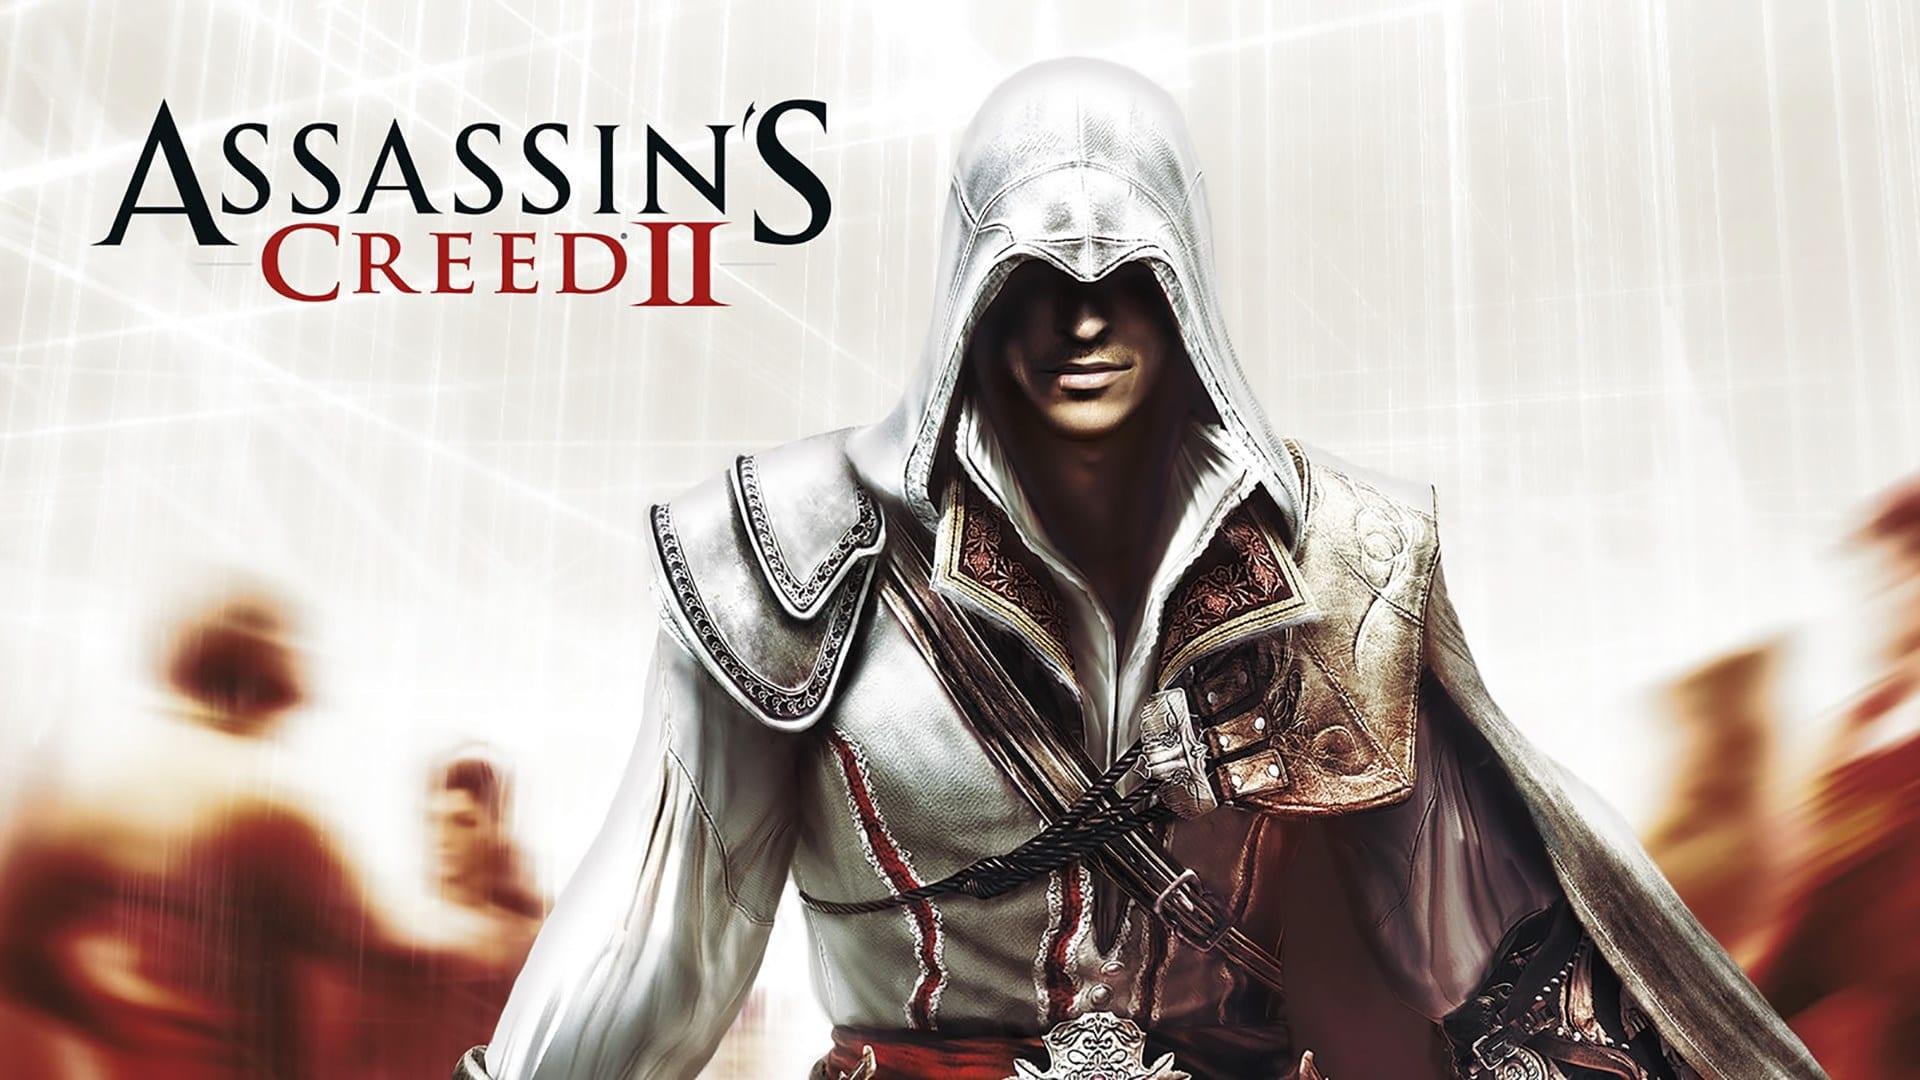 Assassin's Creed 2 & More Ubisoft Titles Will Soon Lose Online Features